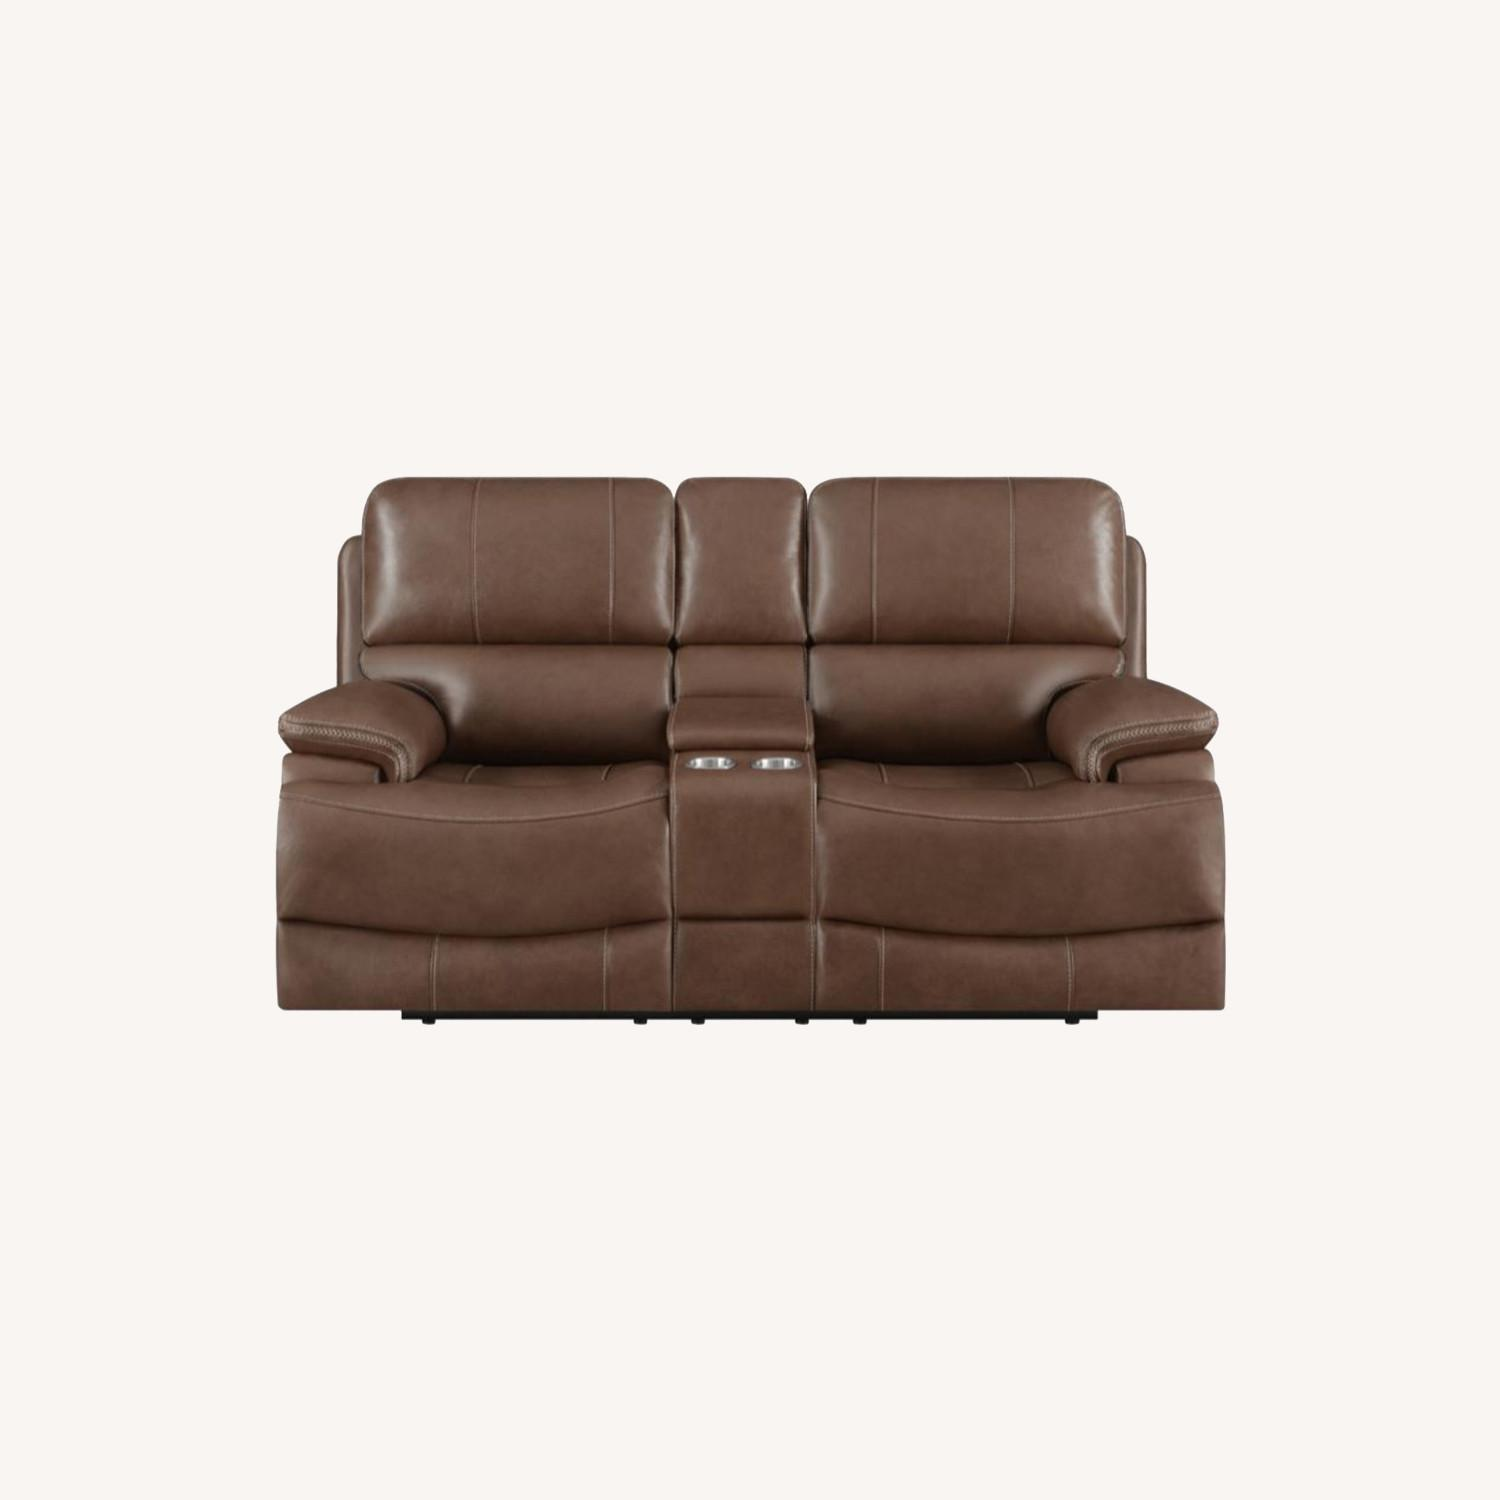 Power Loveseat In Saddle Brown W/ Reclining Seats - image-7